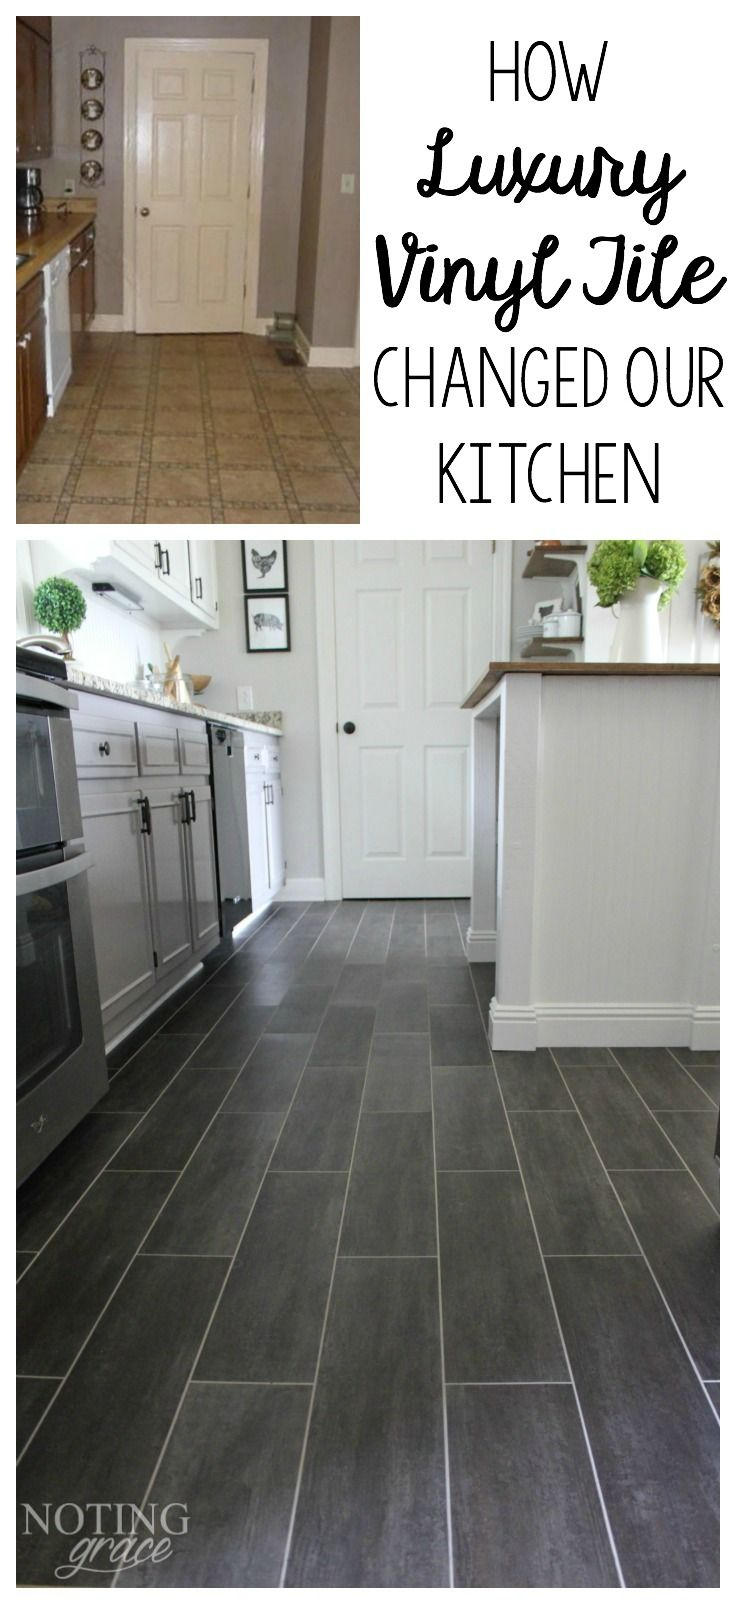 kitchen vinyl pfister faucets diy flooring ideas it took only 3 days and 400 to completely transform our with groutable luxury tile